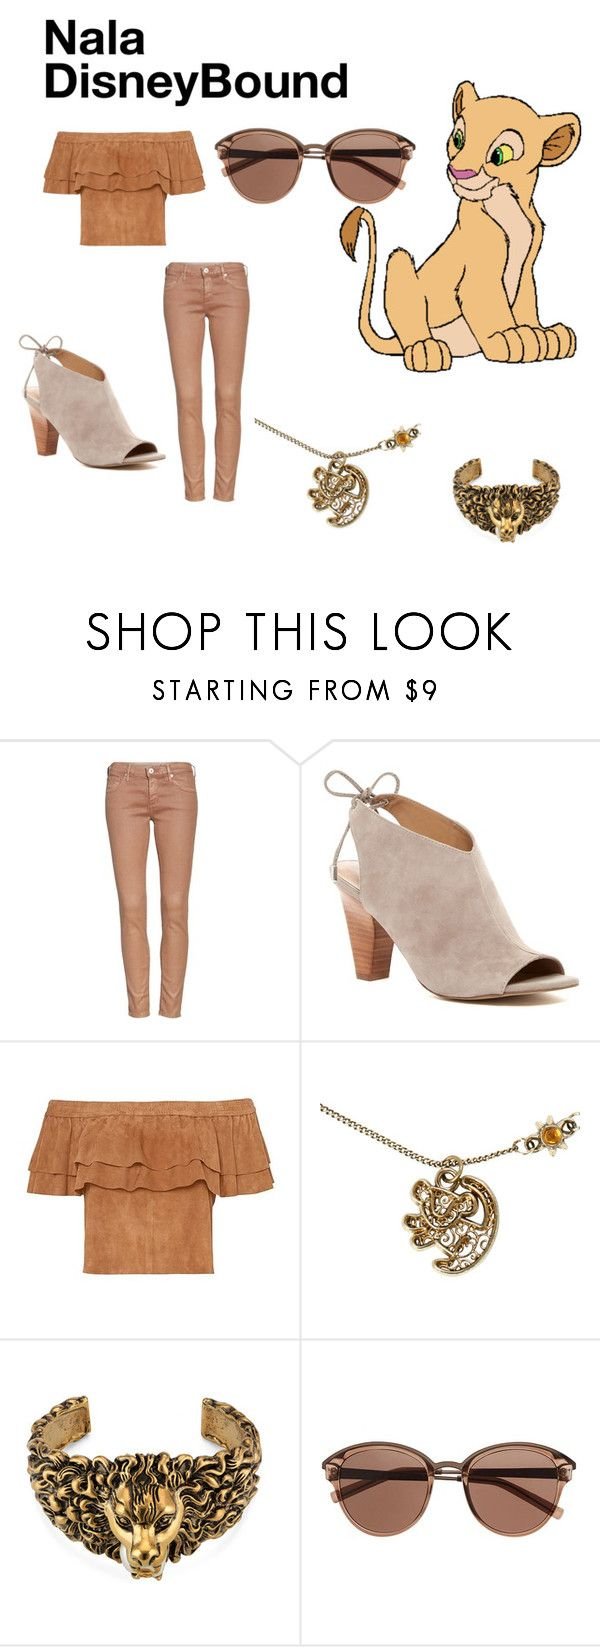 """""""Nala DisneyBound"""" by fandom-doll ❤ liked on Polyvore featuring AG Adriano Goldschmied, Franco Sarto, Disney, Gucci and Witchery"""